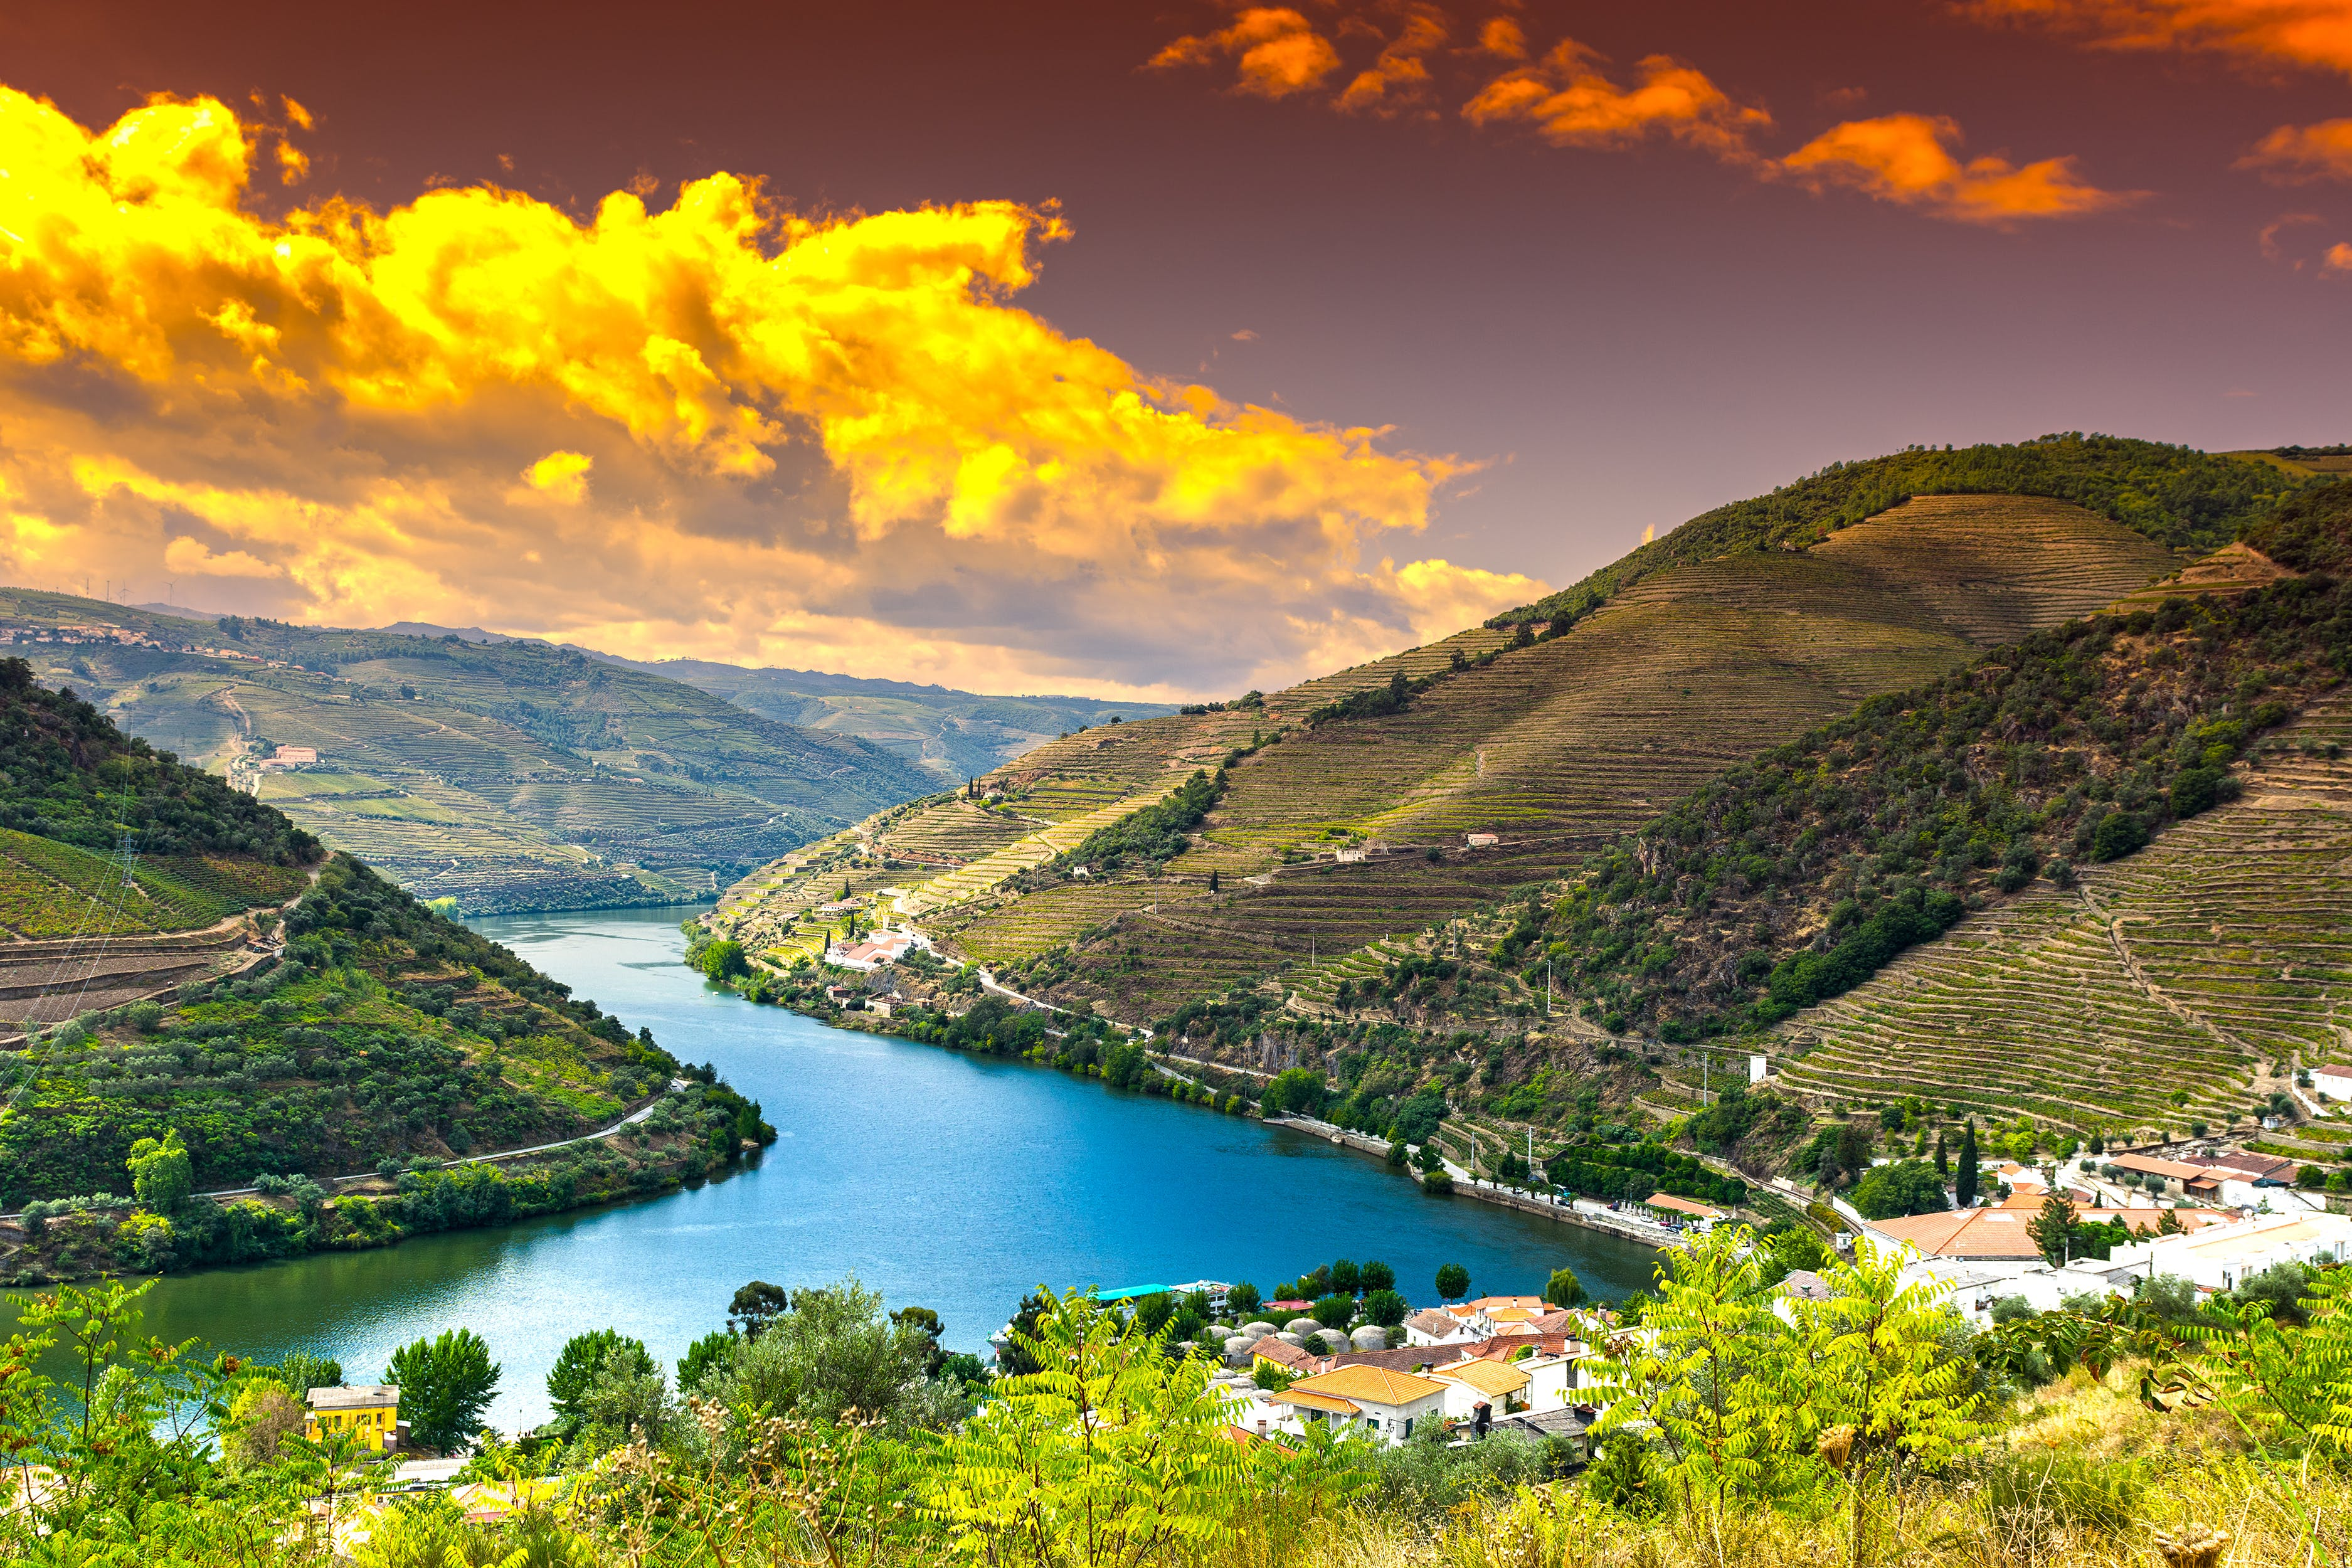 Portugal's Douro River winds through an epic landscape